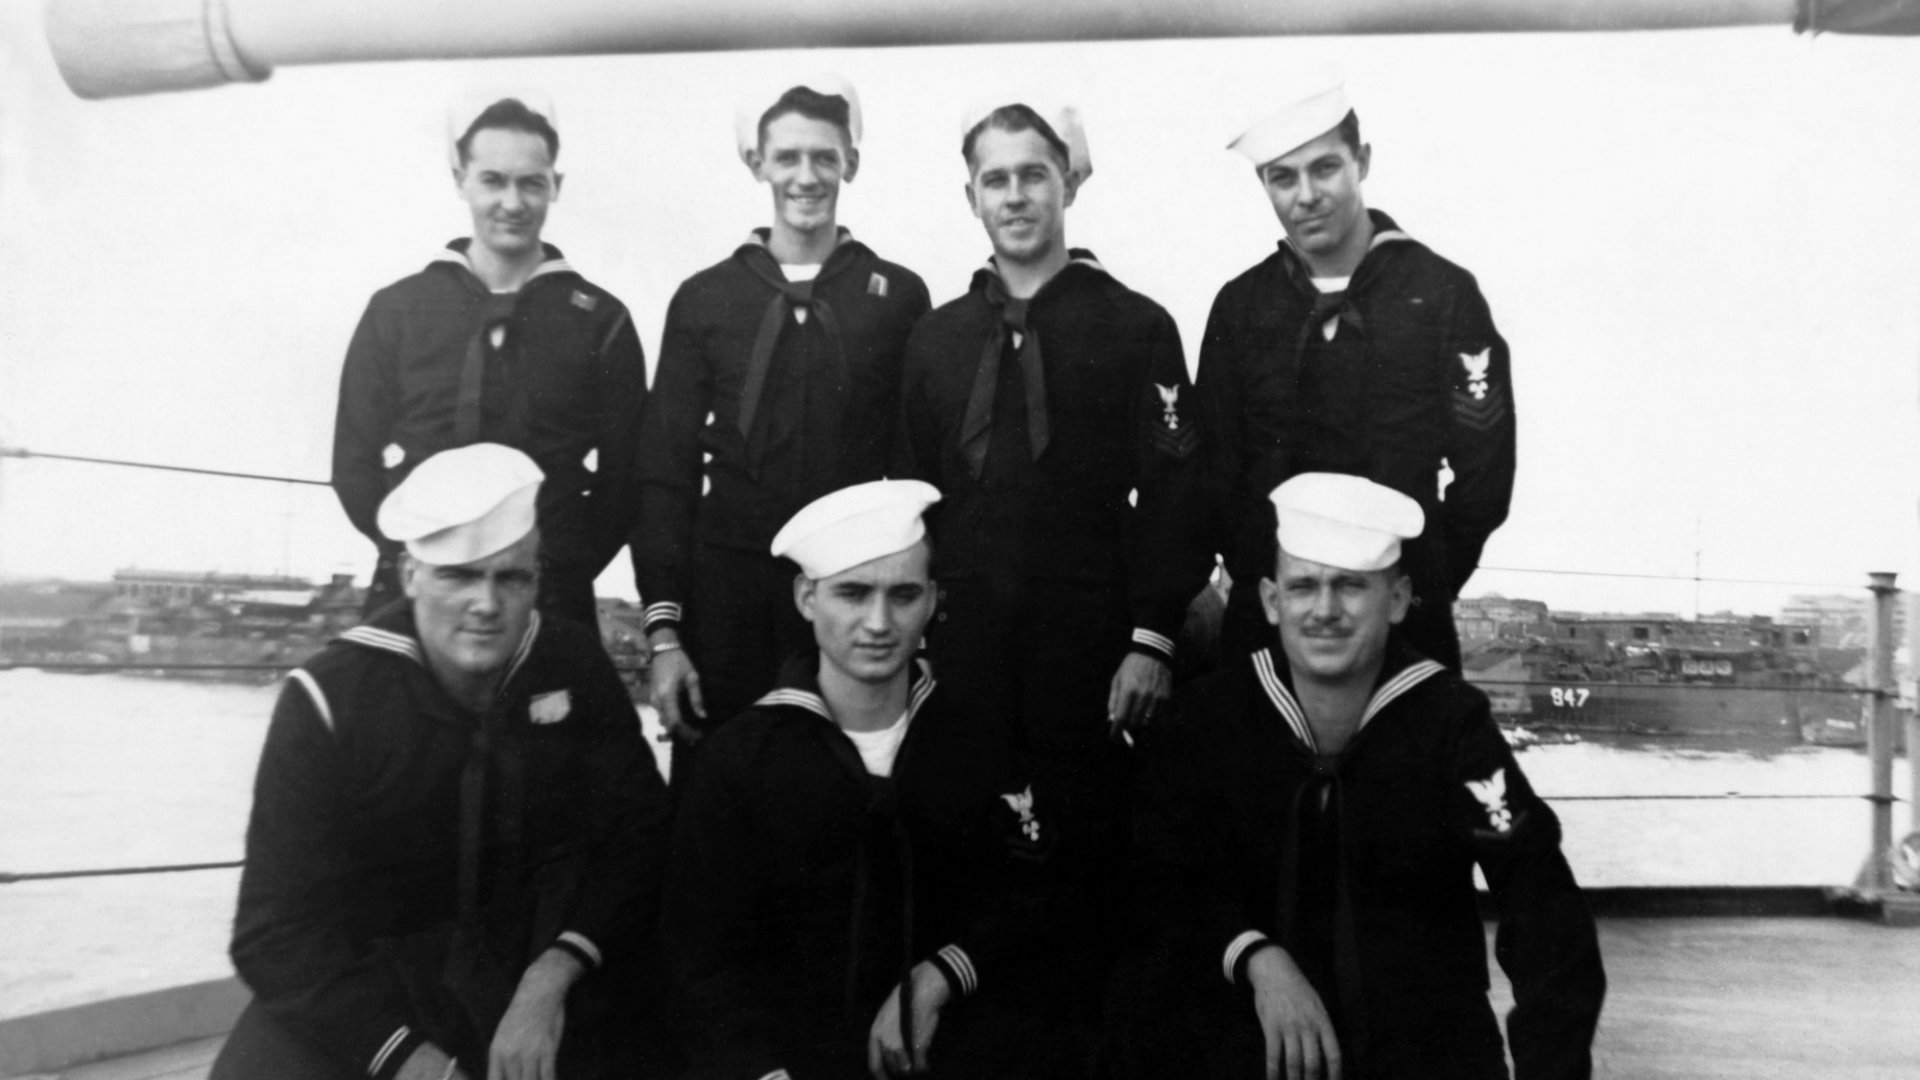 Why I Hired a Retired Navy Vet for My Startup Instead of a Millennial